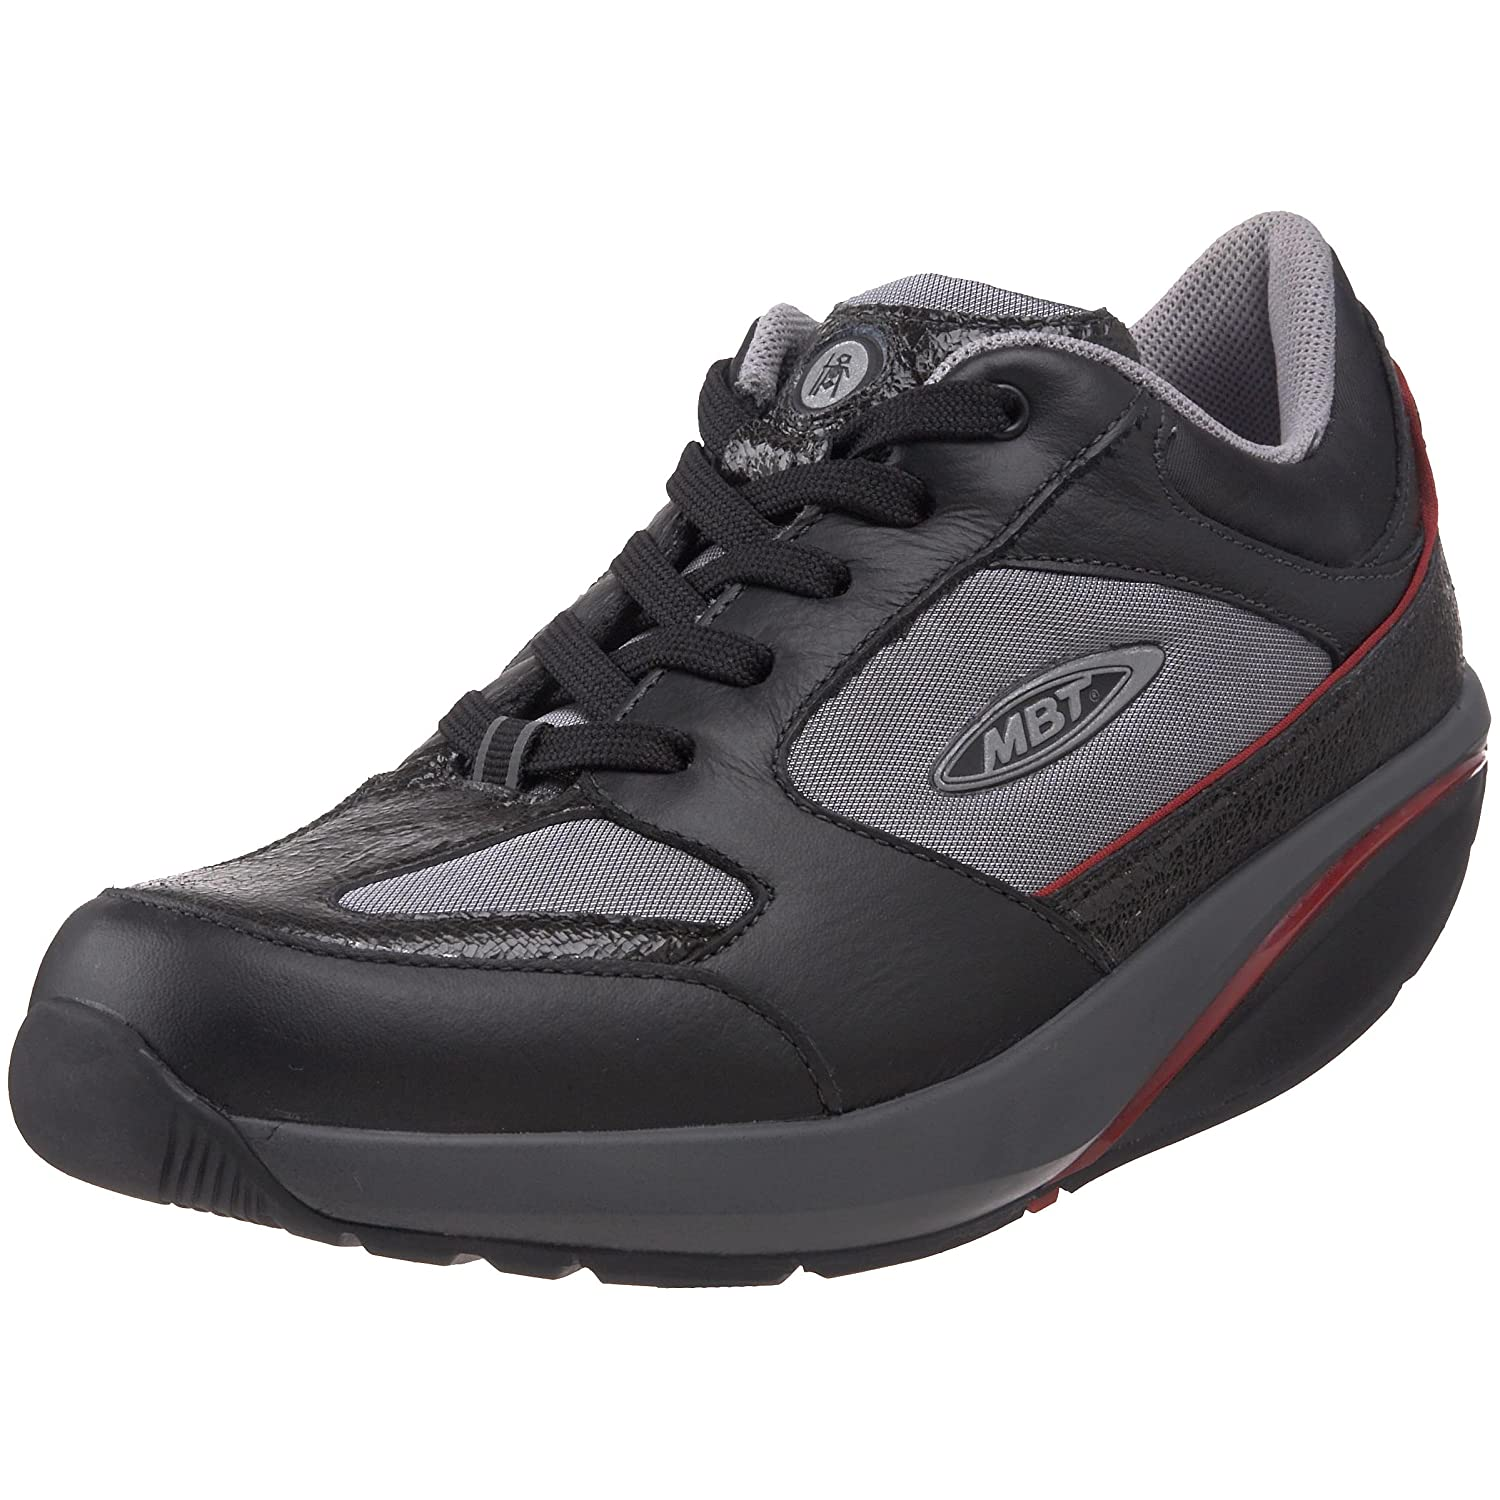 MBT Women's Moja Black Silver Lux Shoe at Sears.com